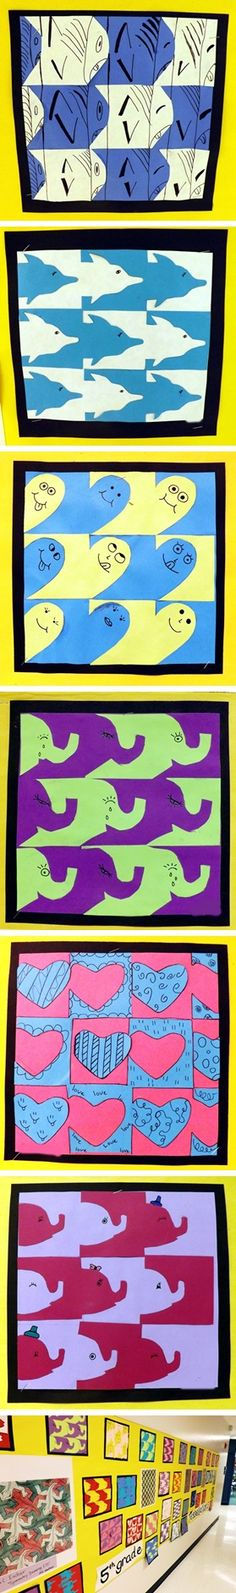 love the graphic quality of these. Easy Tessellations (sort of) inspired by Escher. construction paper, glue, sharpie.